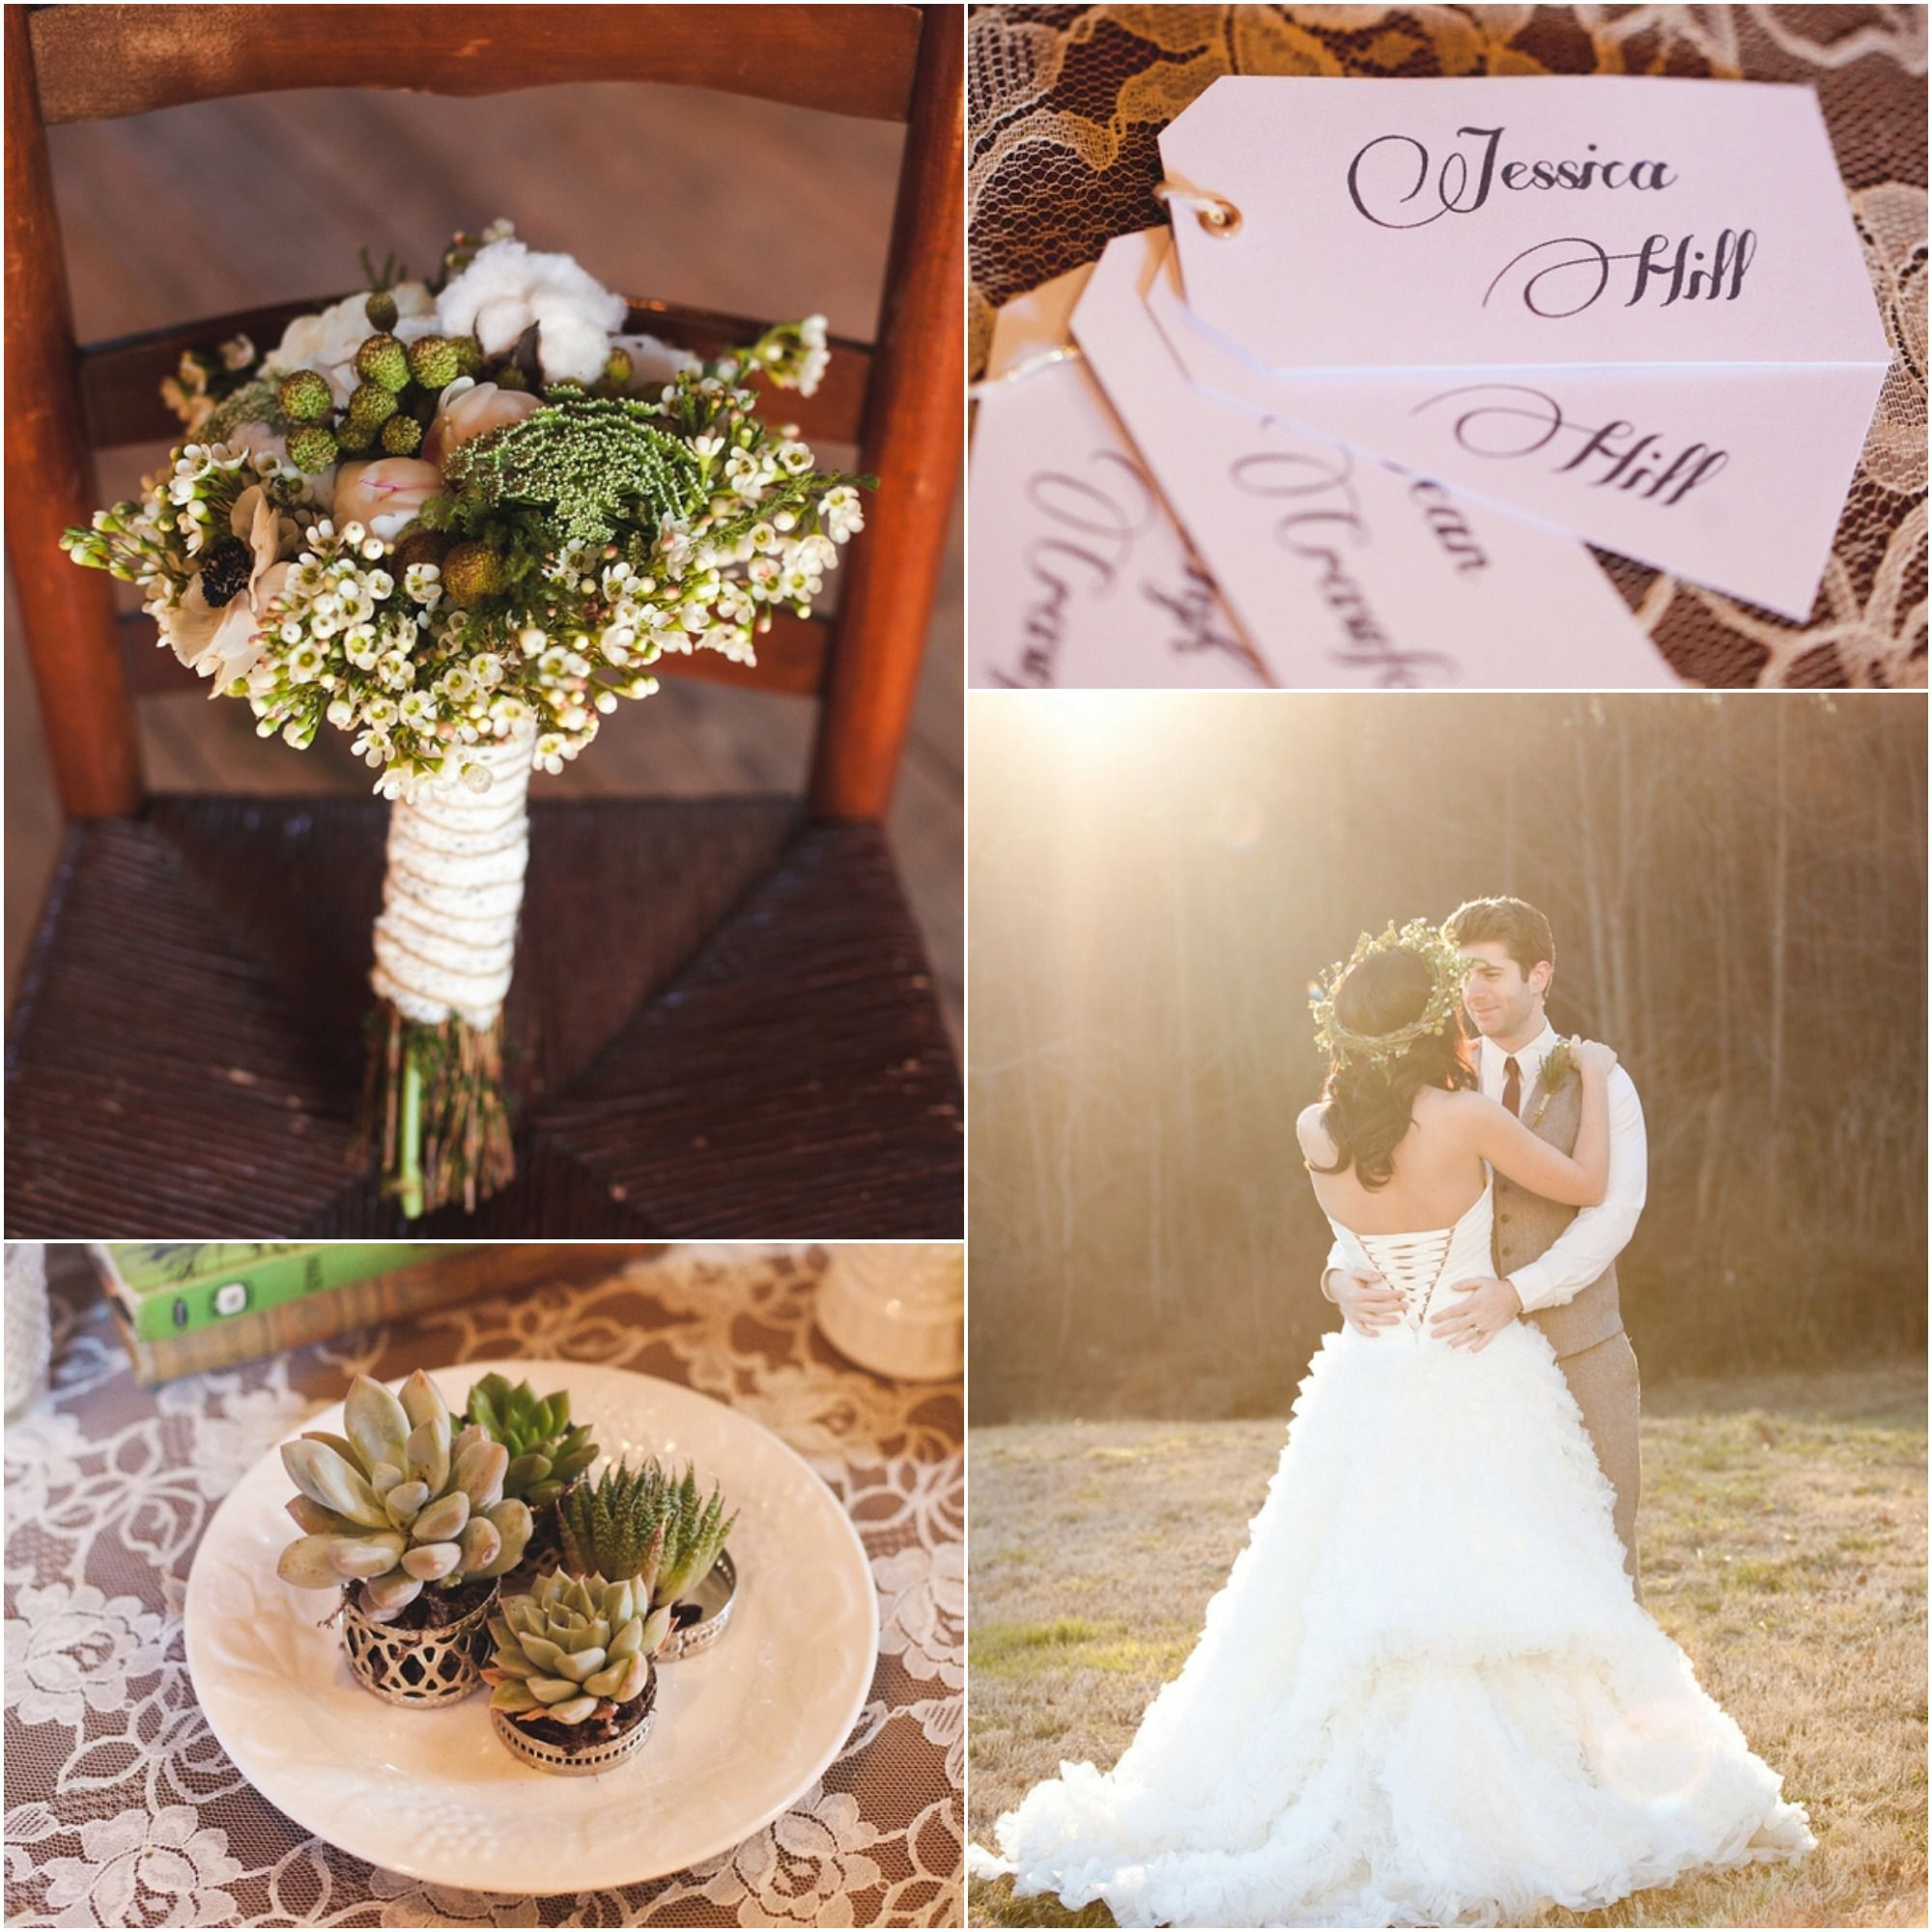 Wedding Ideas And Inspirations: Romantic Rustic Wedding Inspiration